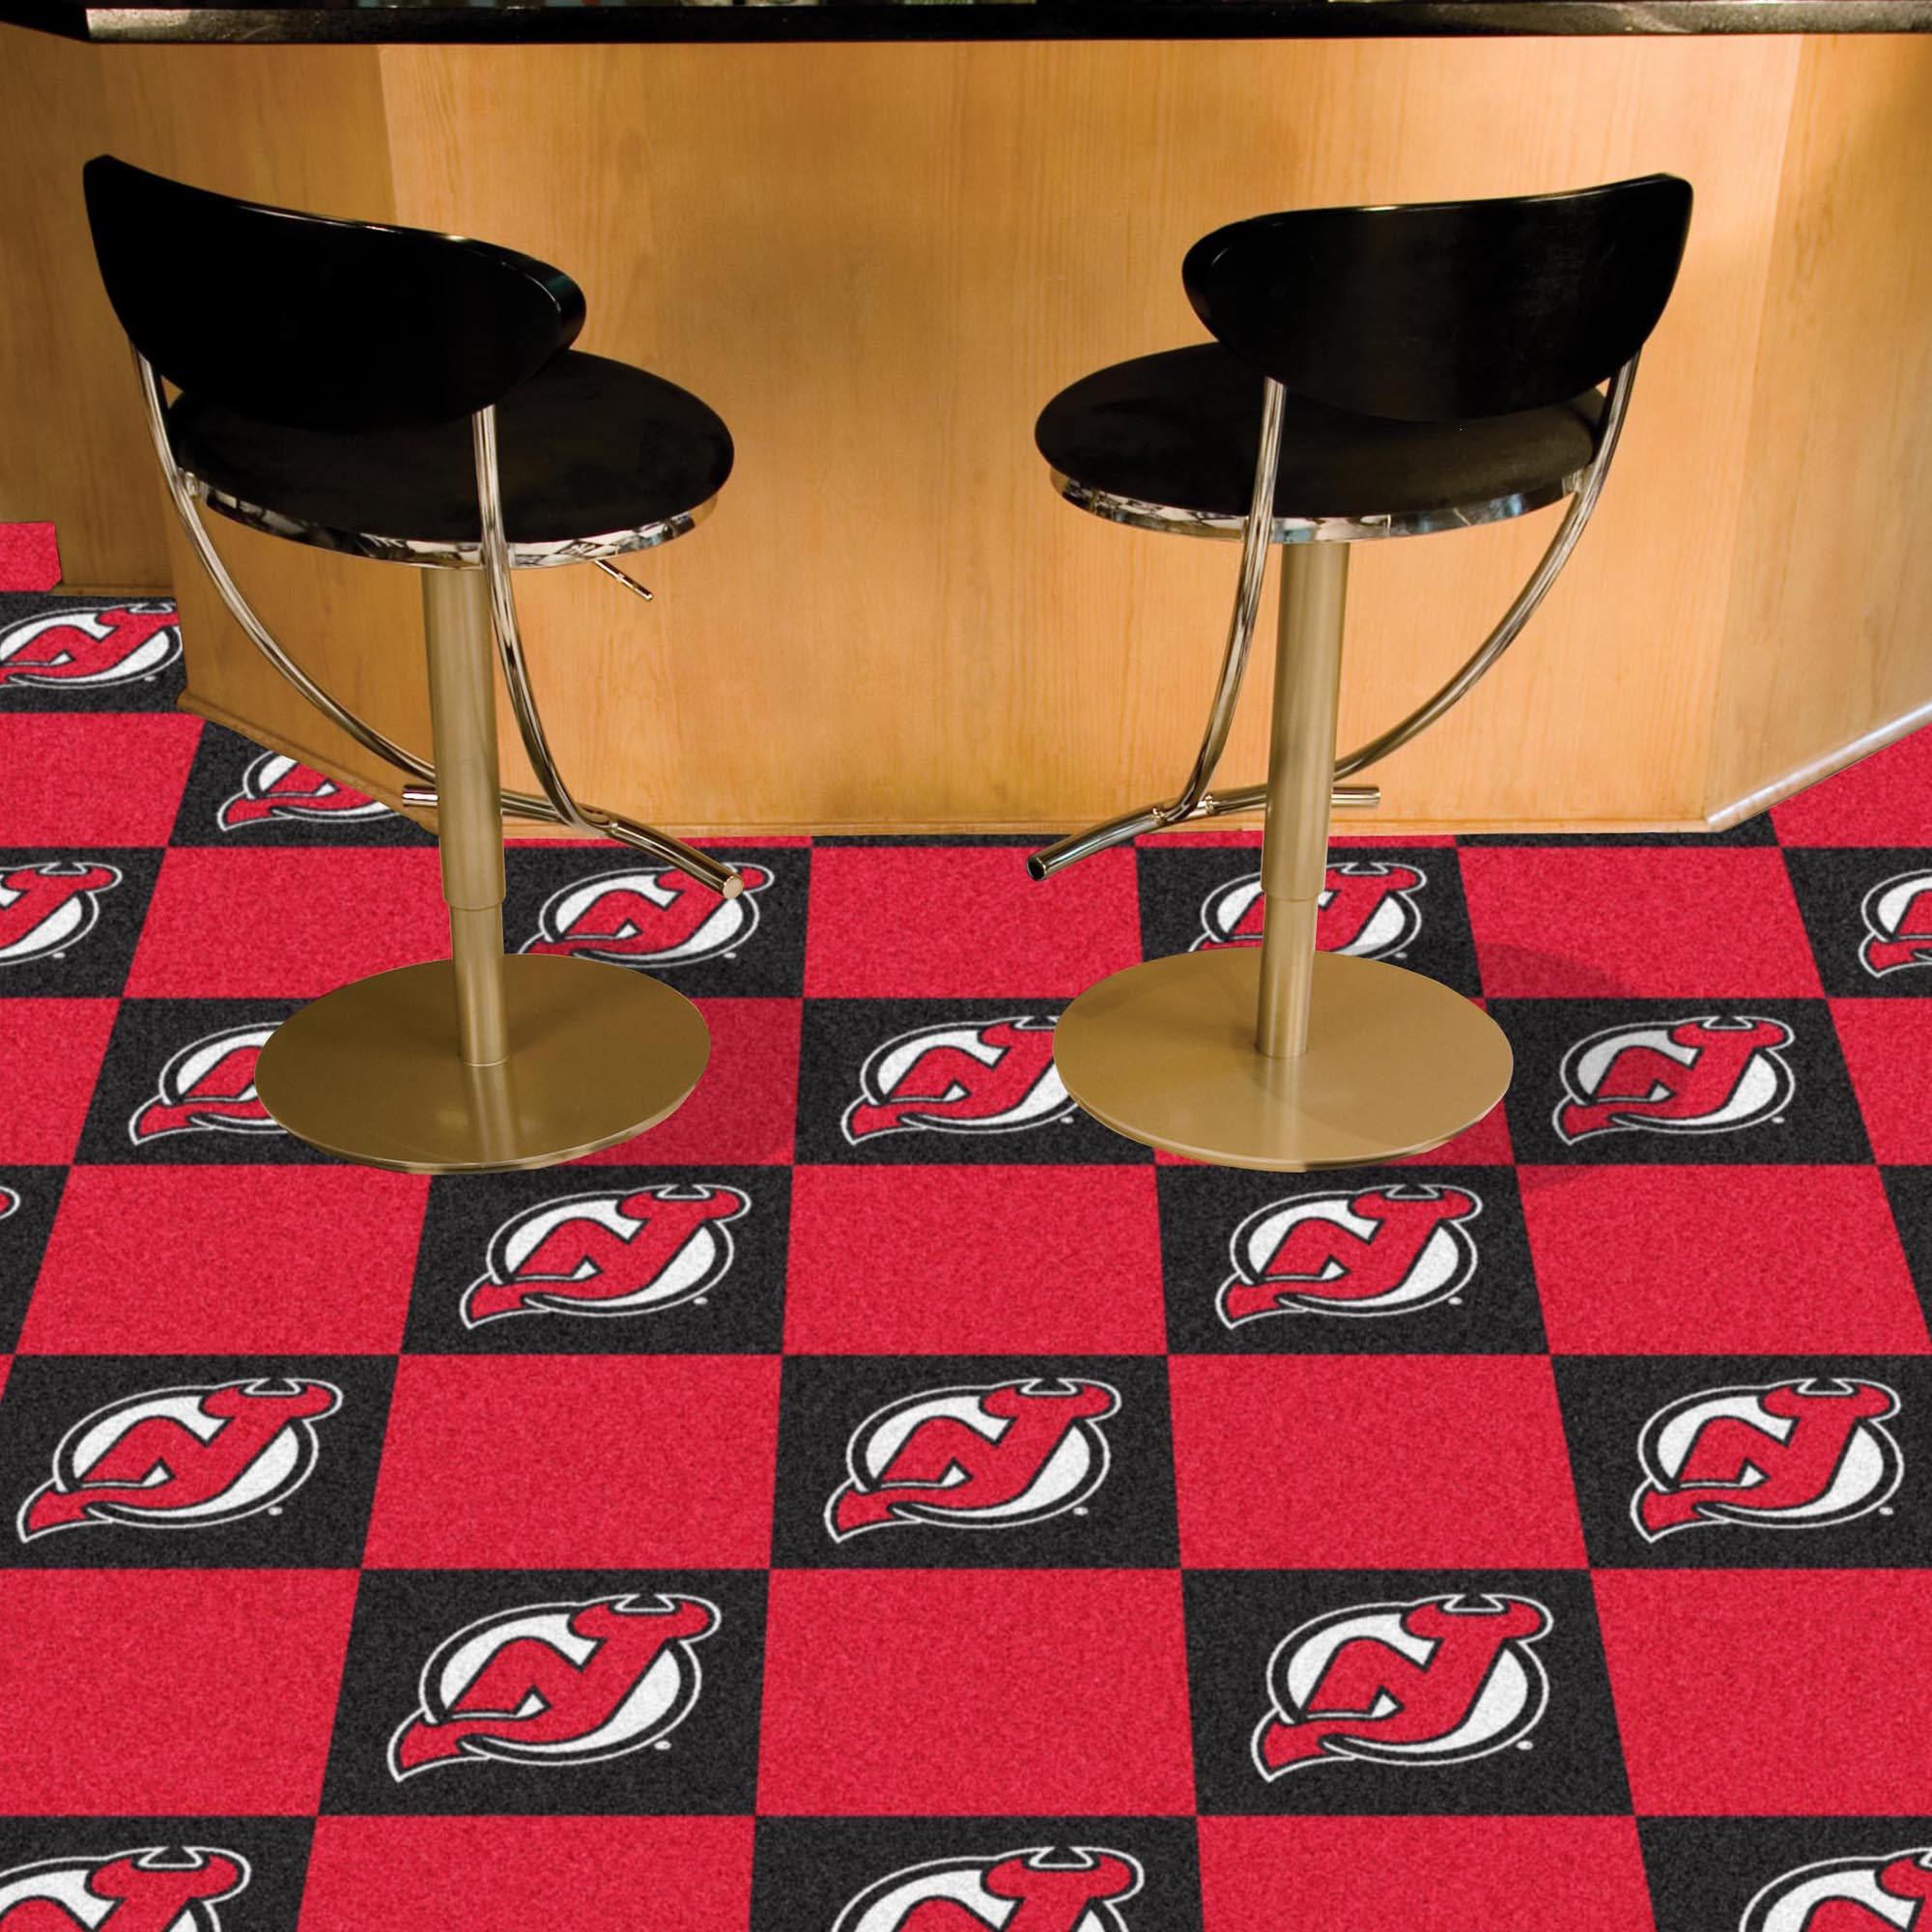 New Jersey Devils Carpet Tiles 18x18 in.